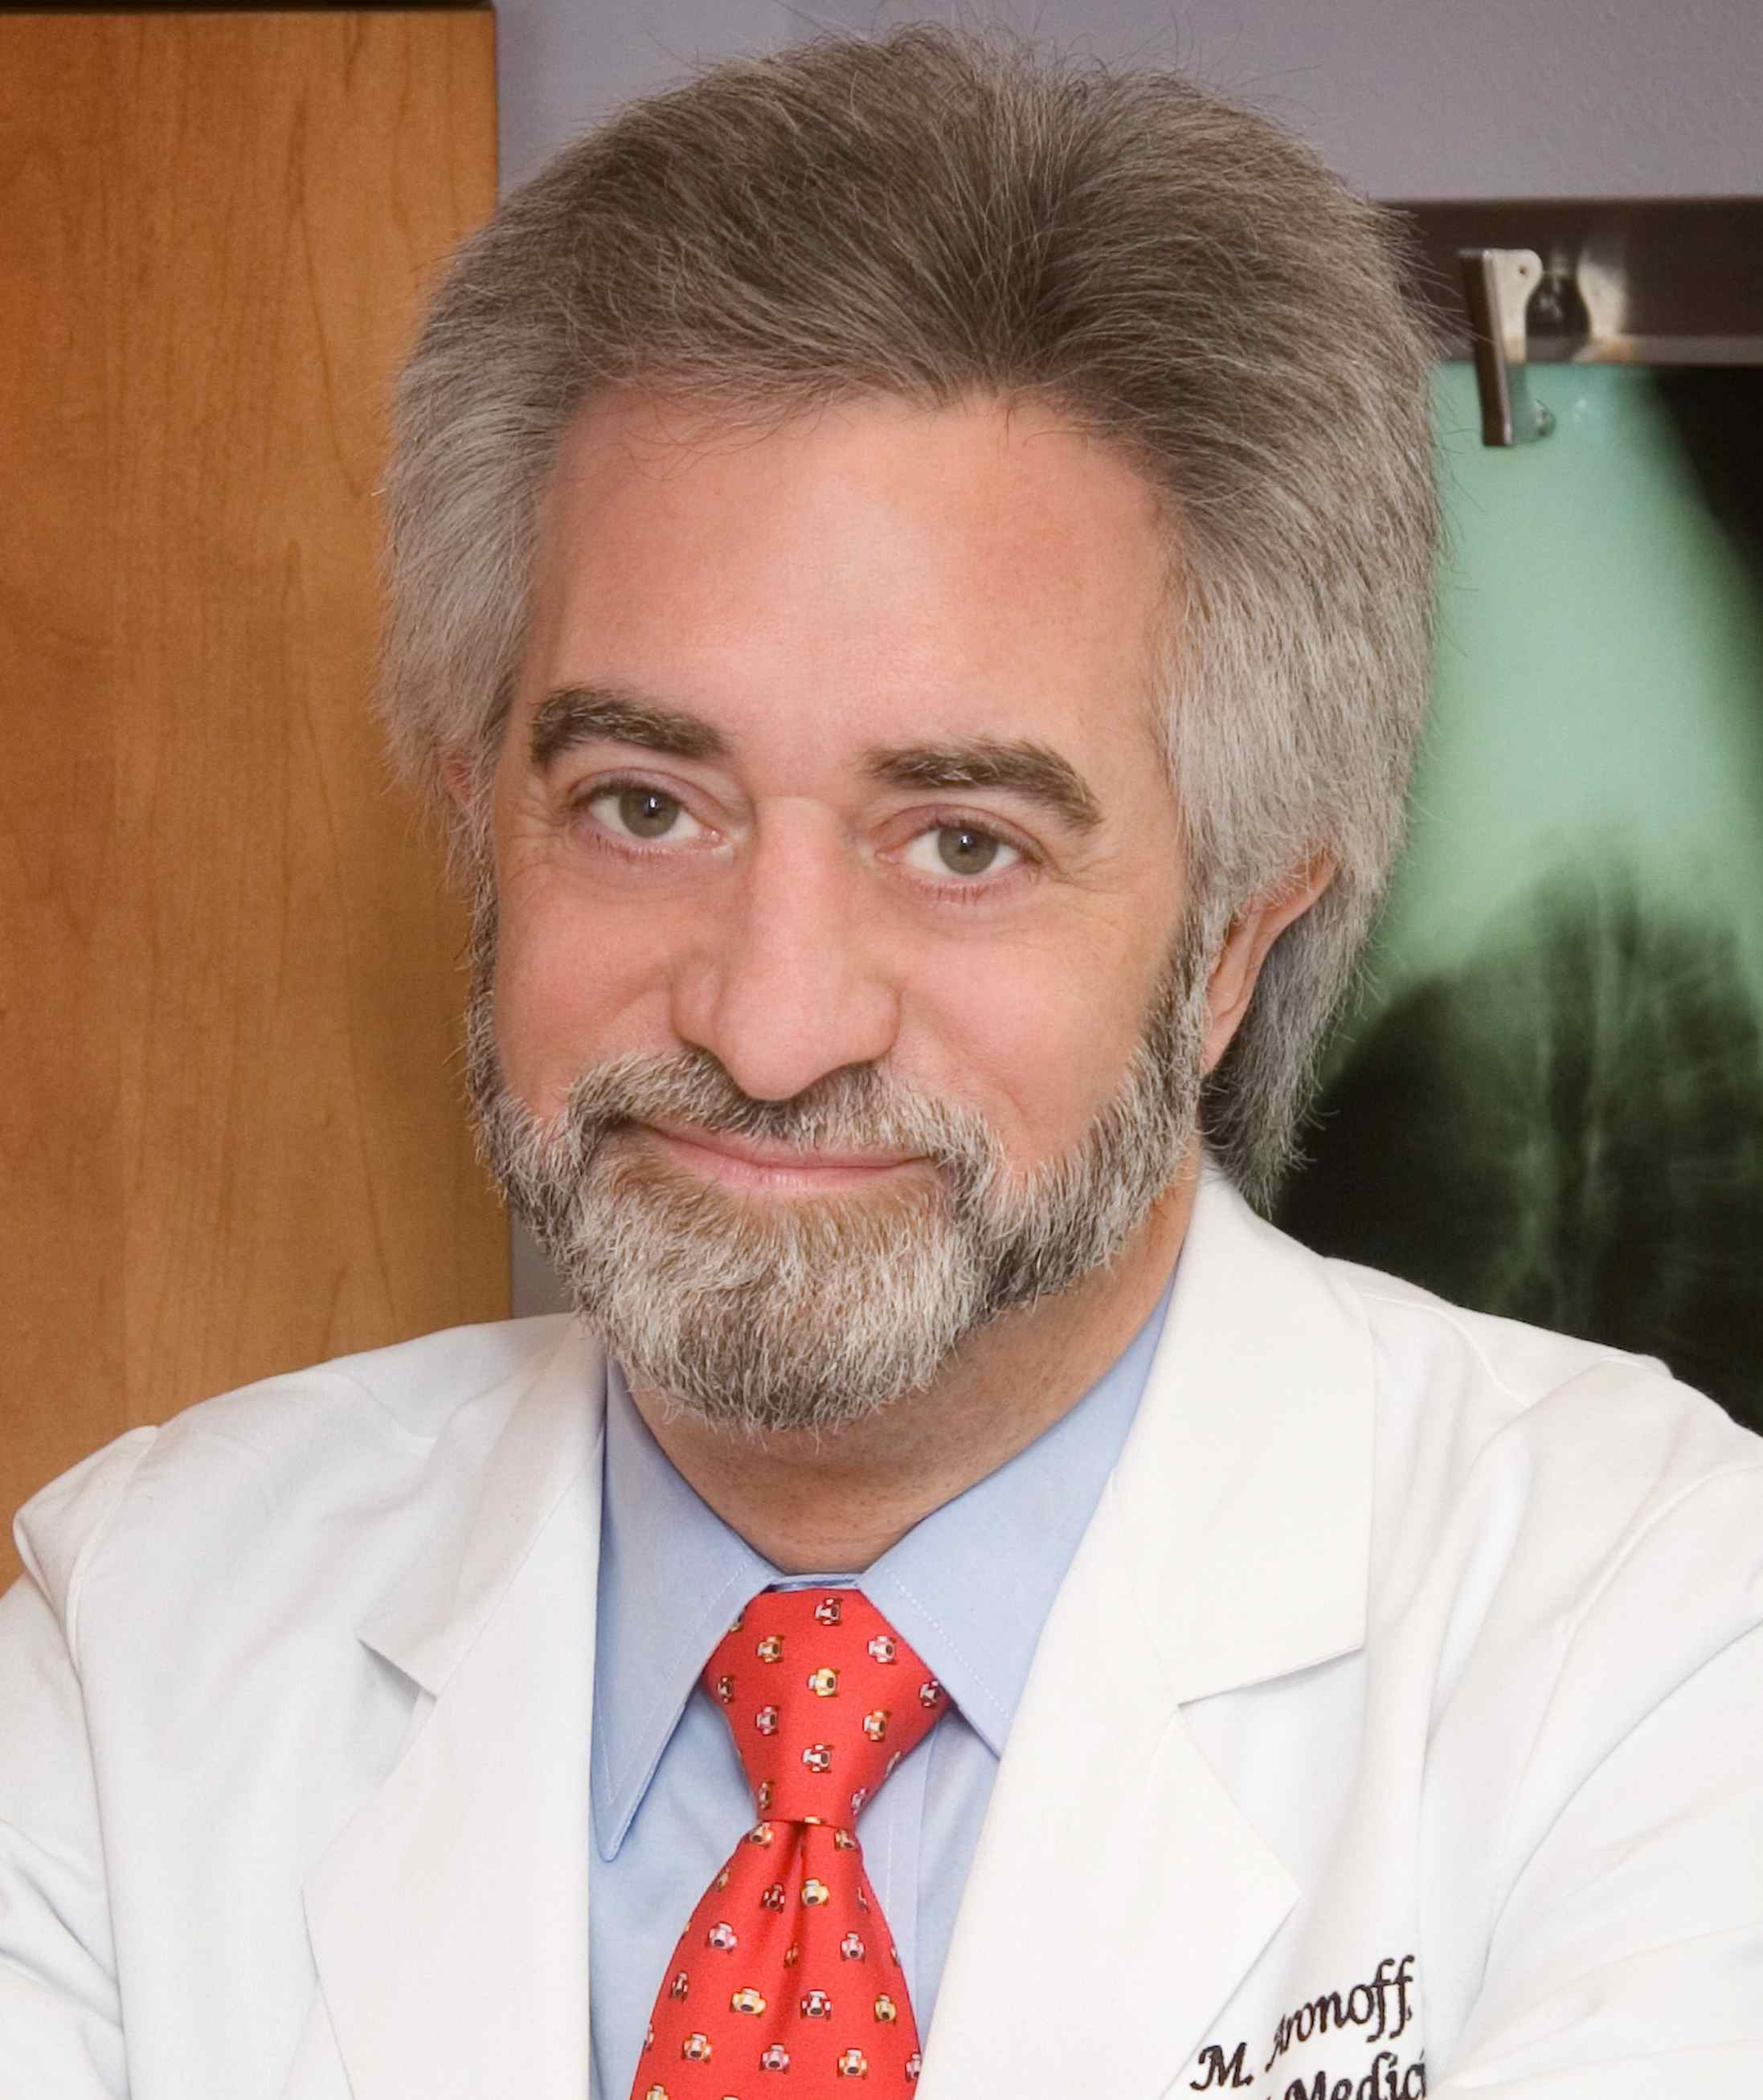 Dr. Phillip Aronoff, MD